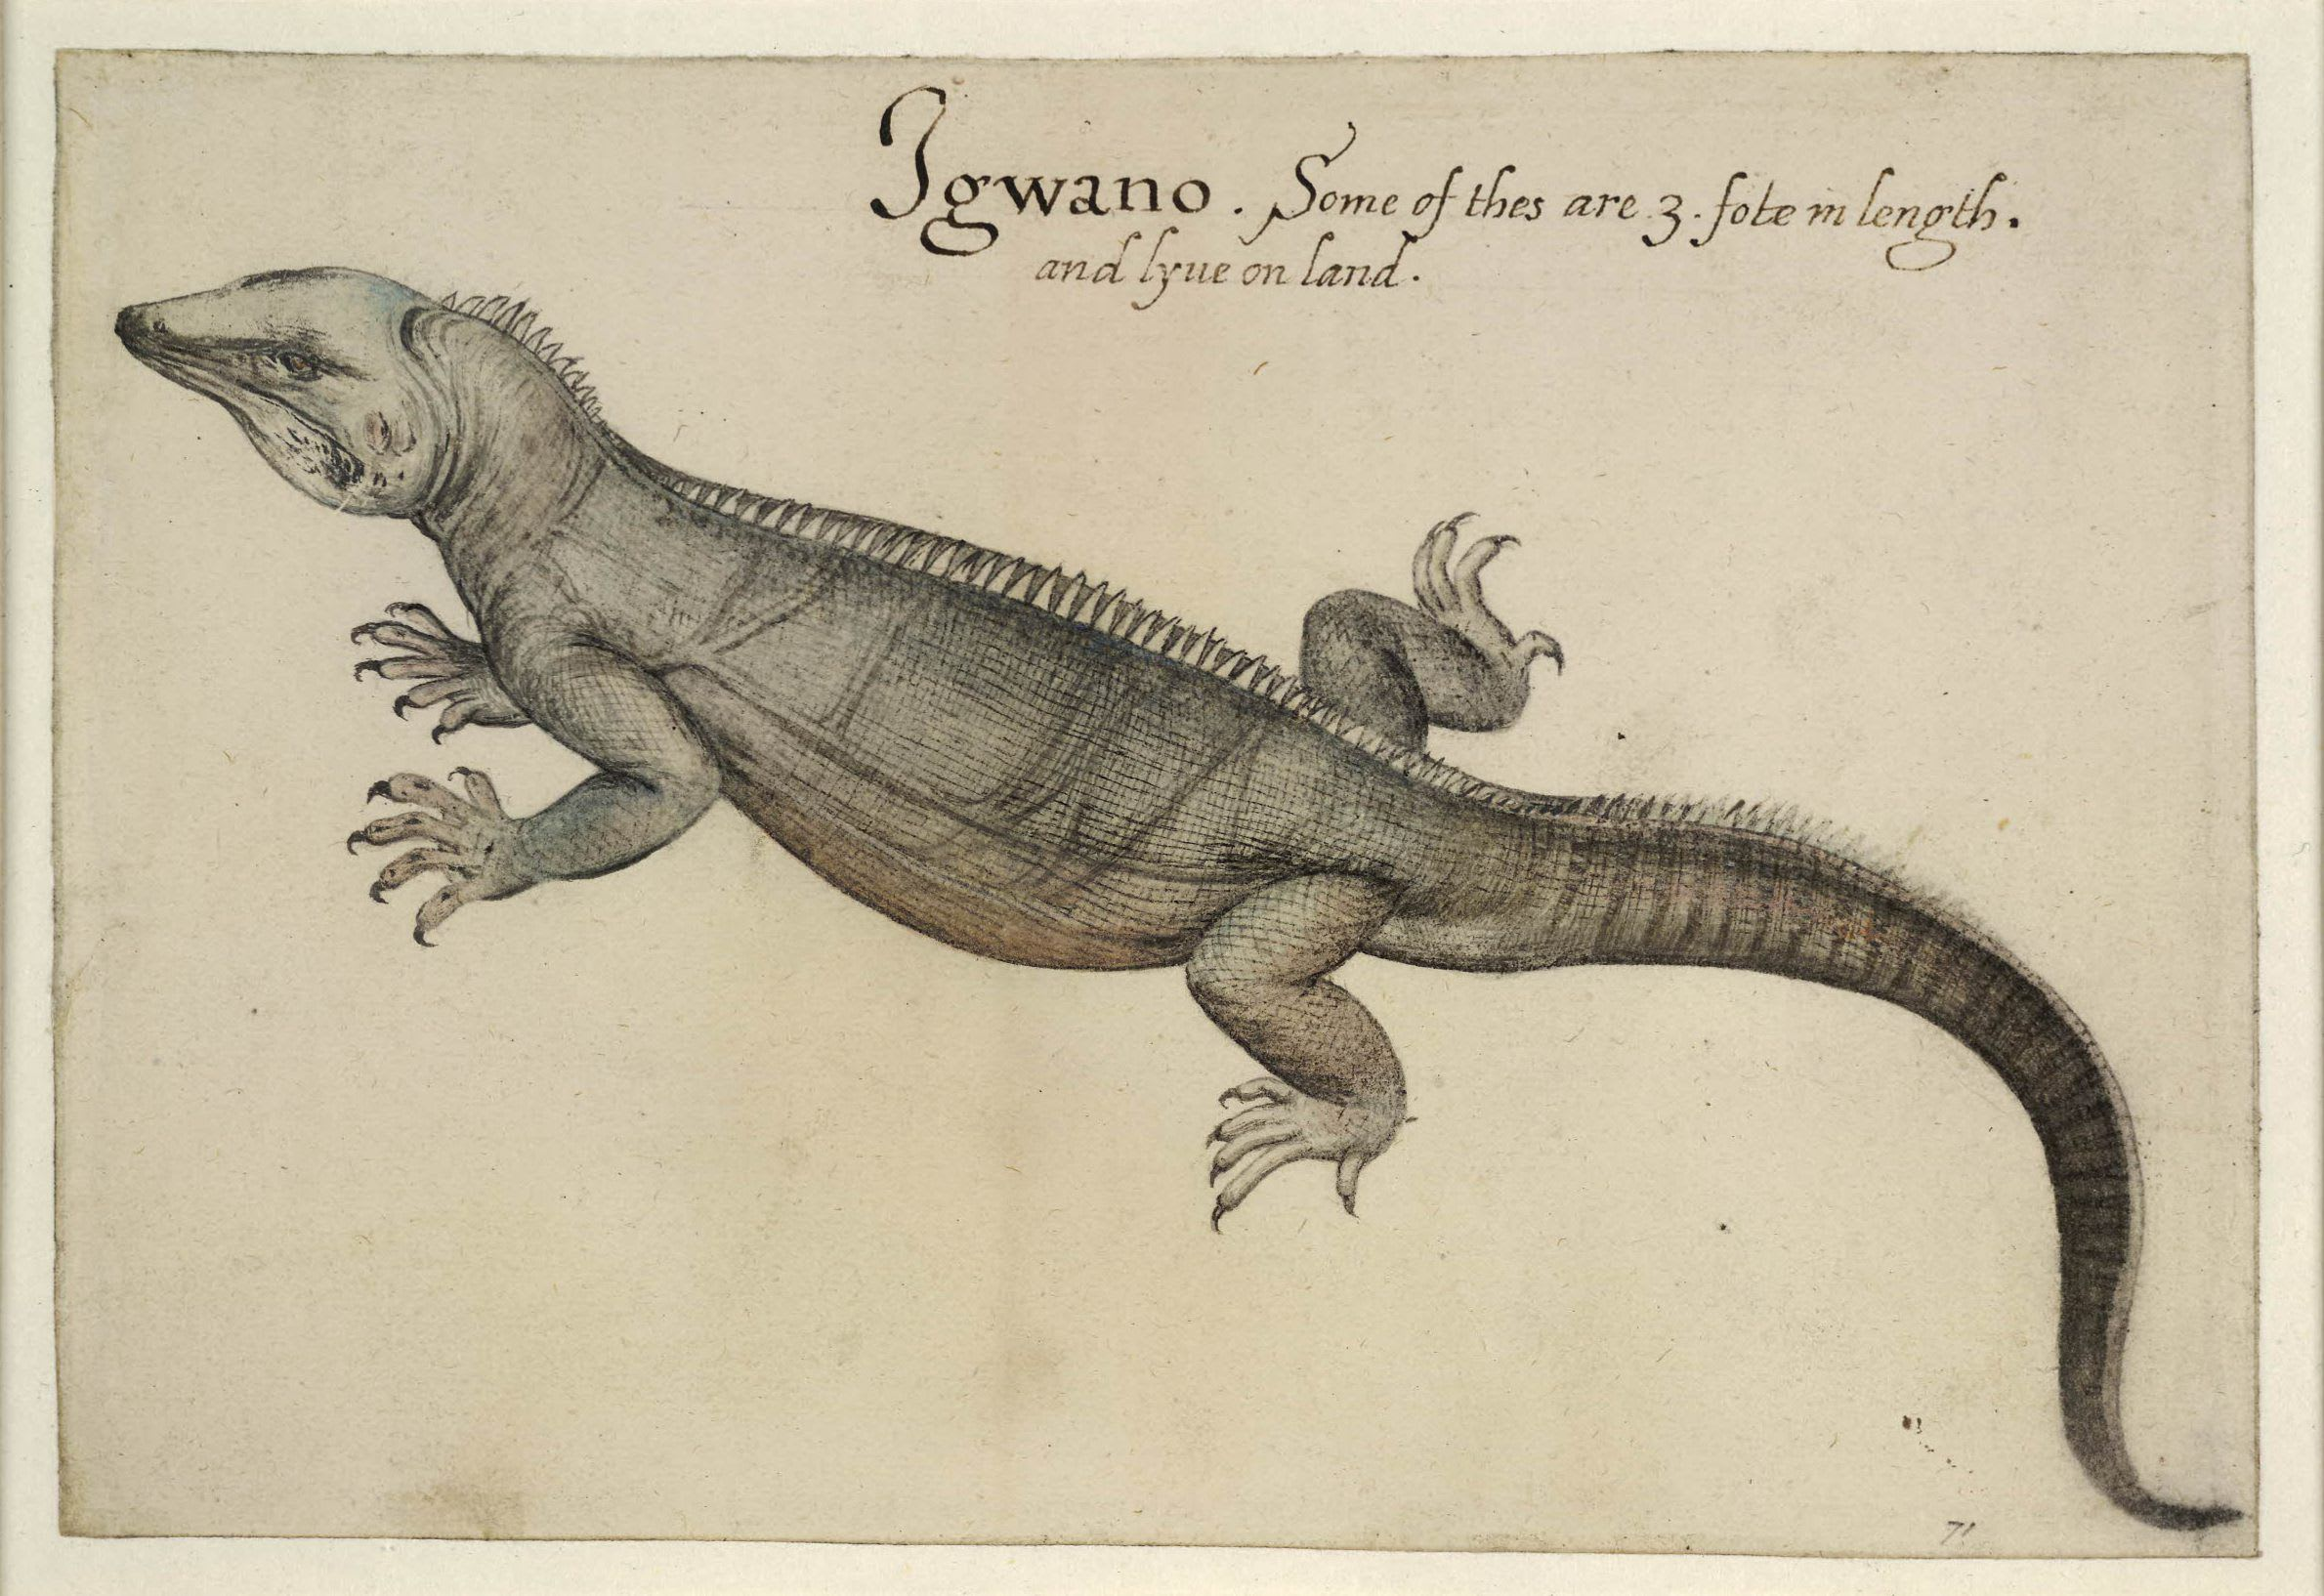 Untitled (Iguana), 1585-1593, John White